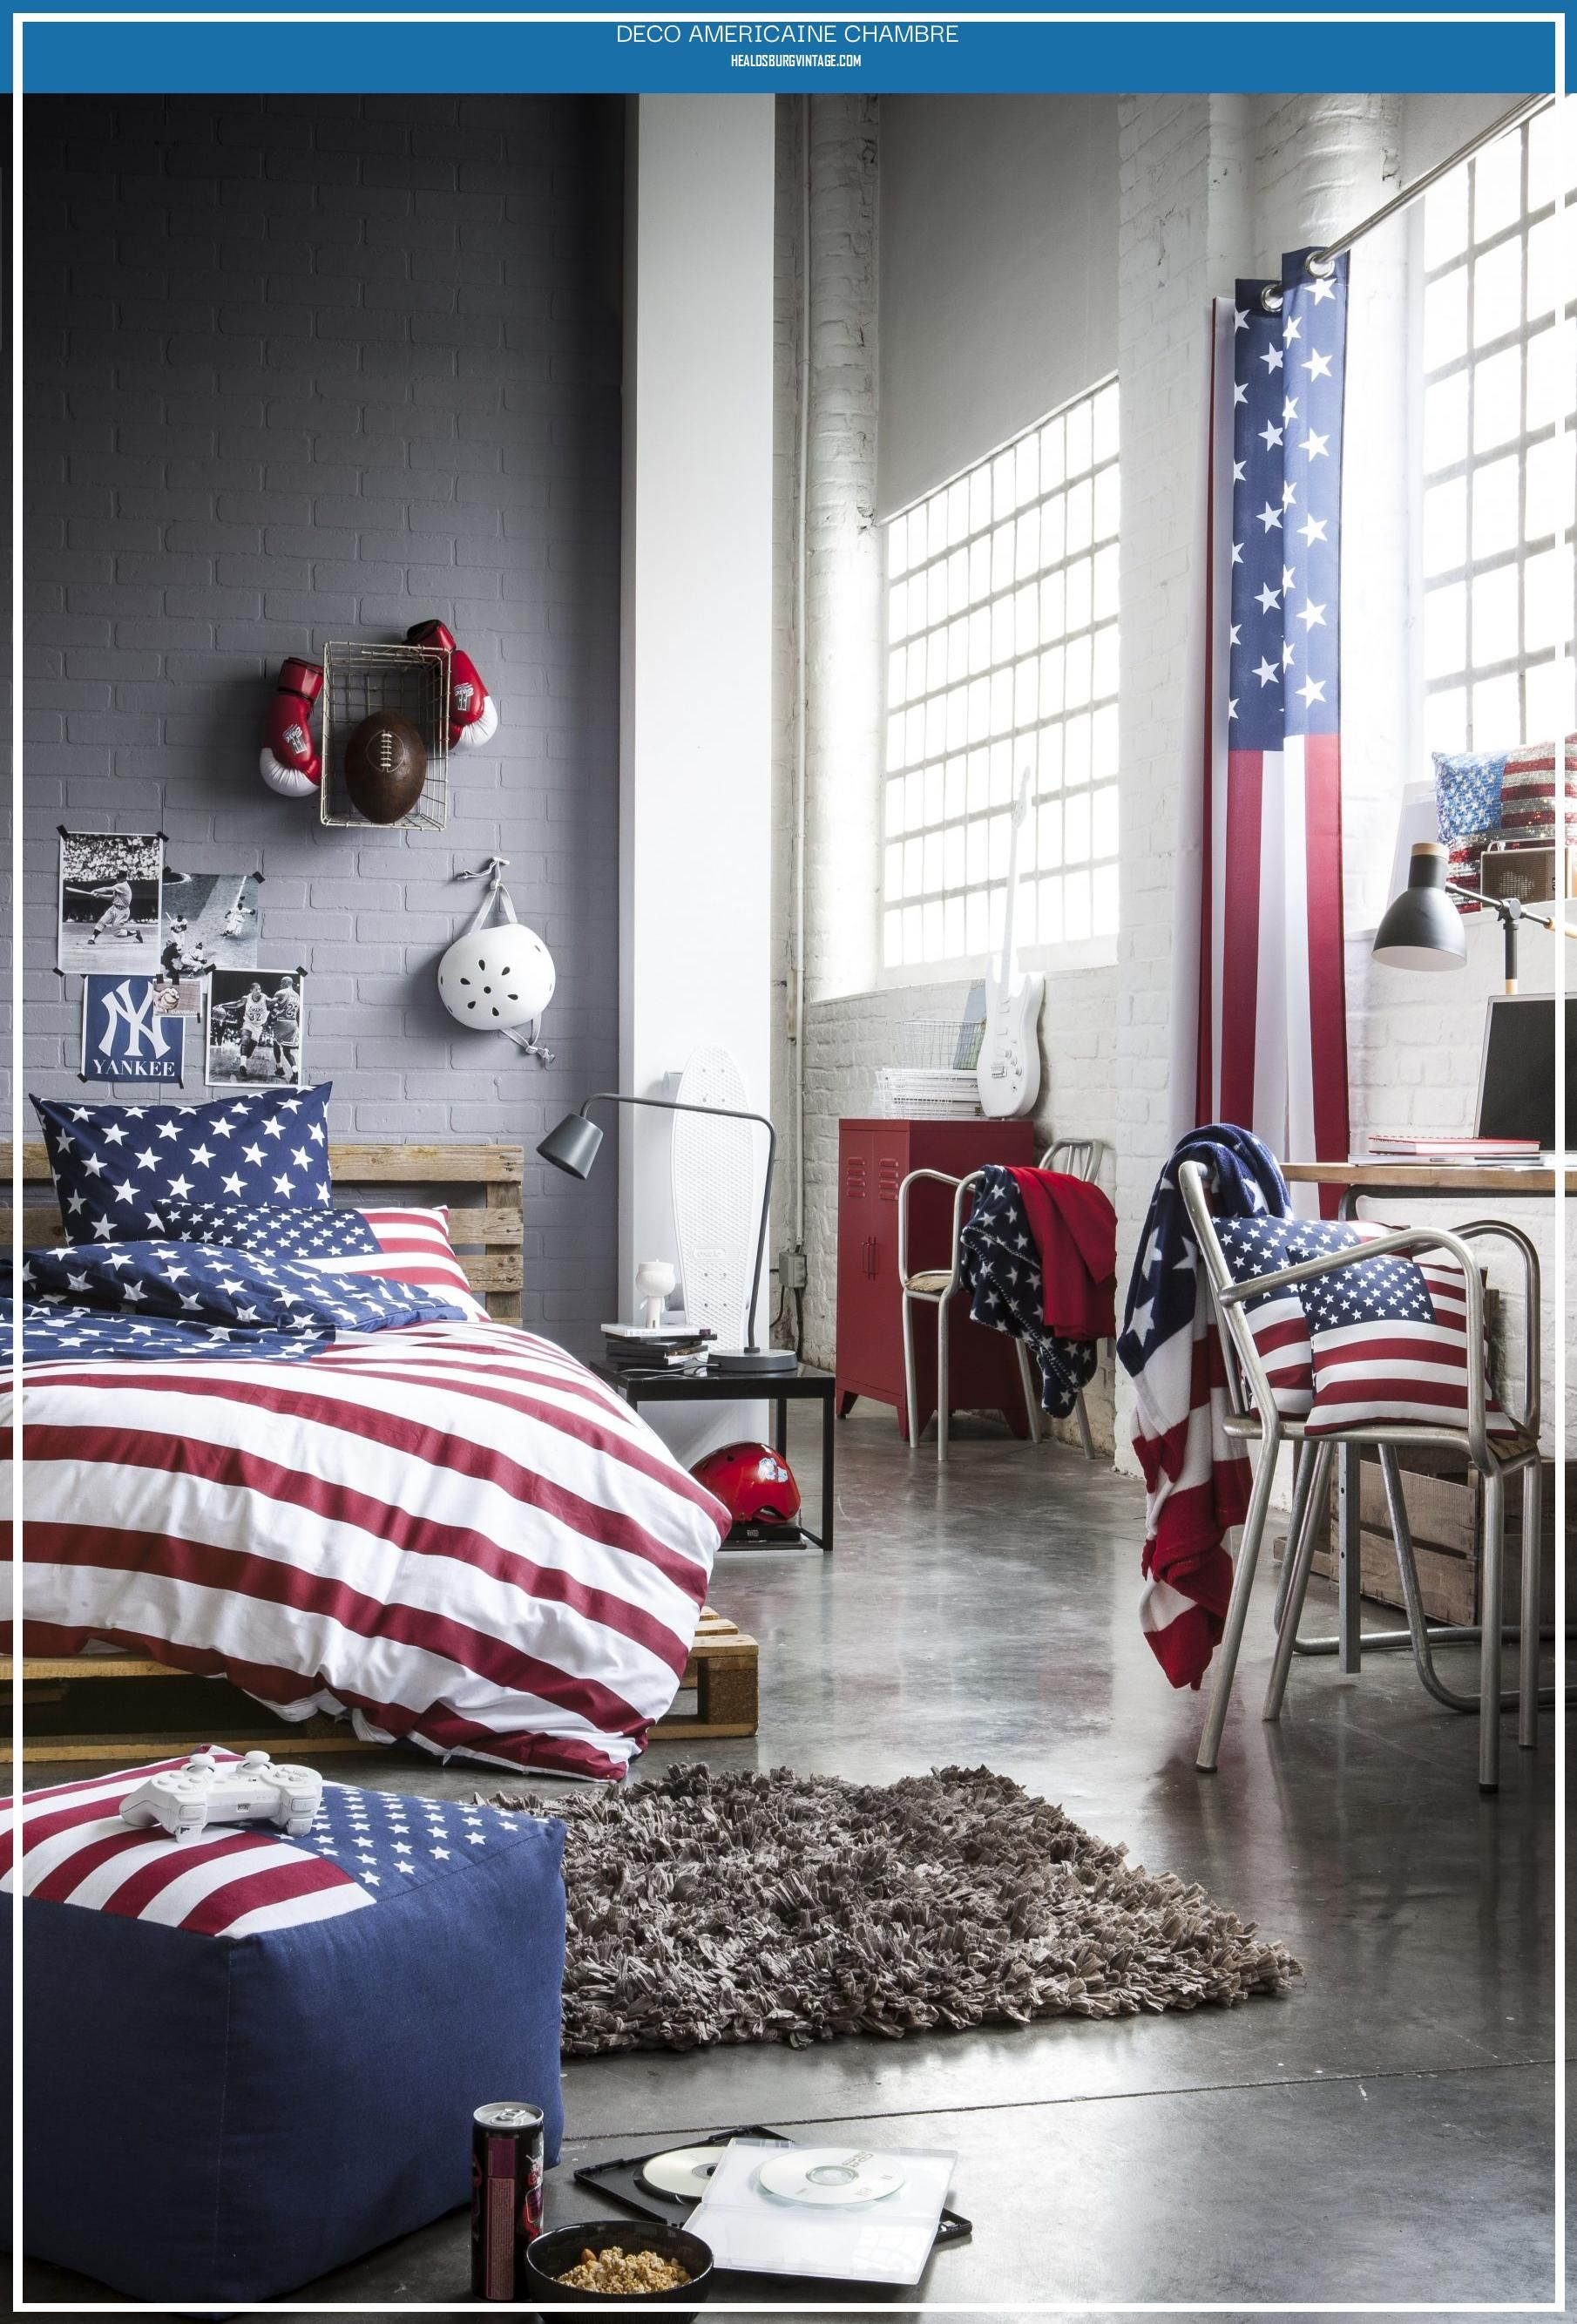 Deco Americaine Chambre   Home, Home decor, Luxurious bed